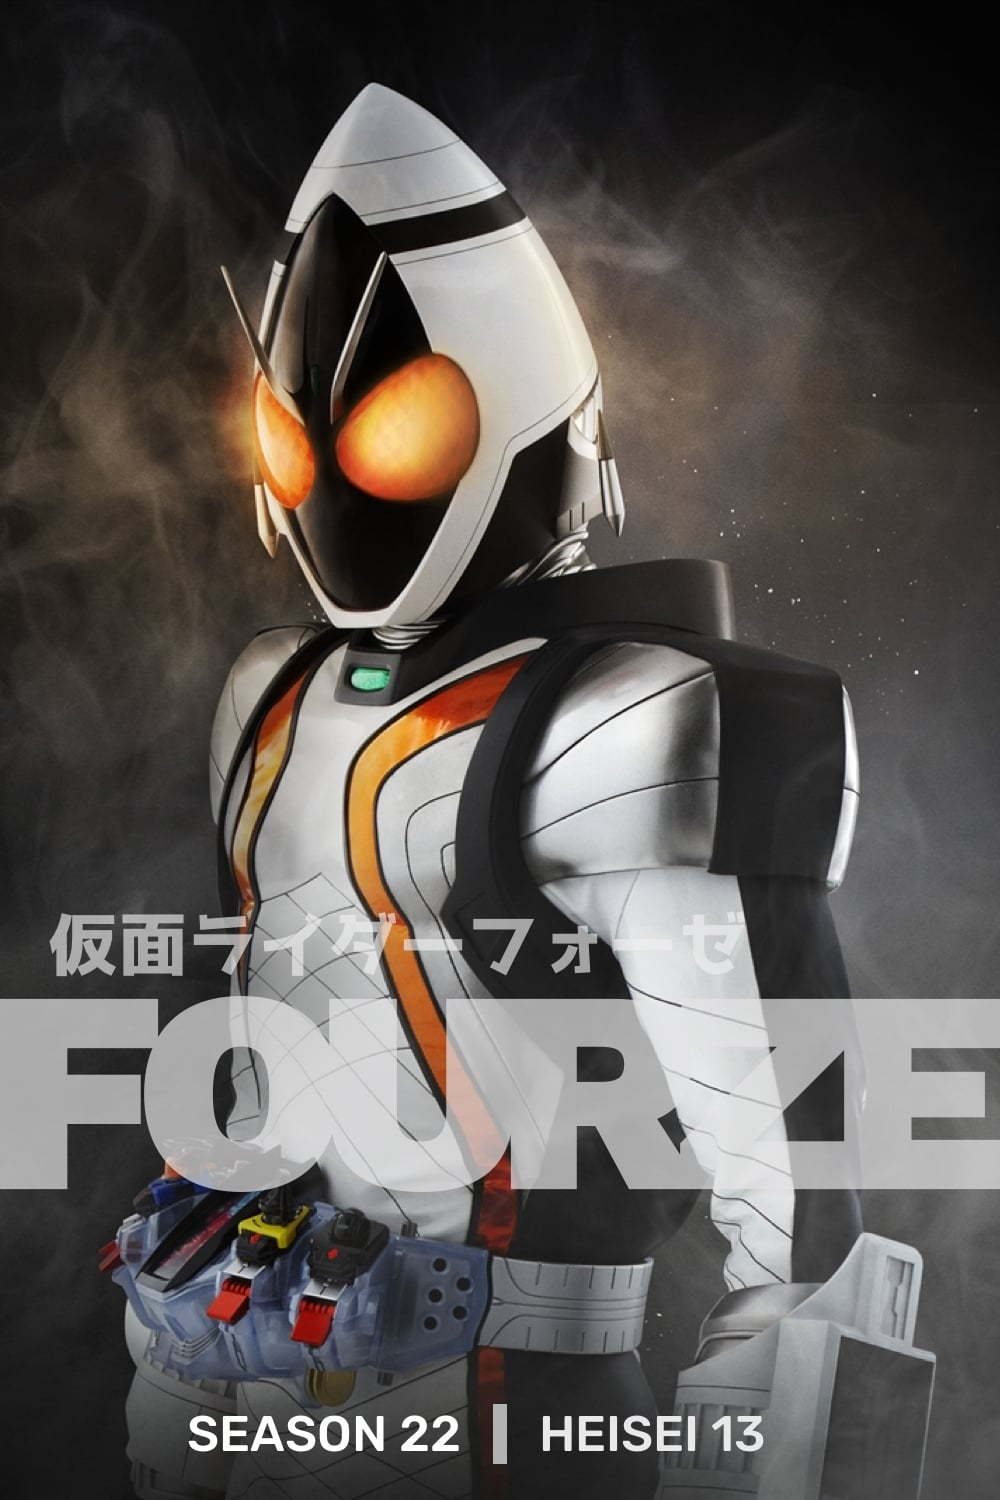 Kamen Rider - Season 21 Episode 2 : Greed, Ice Candy, Present Season 22